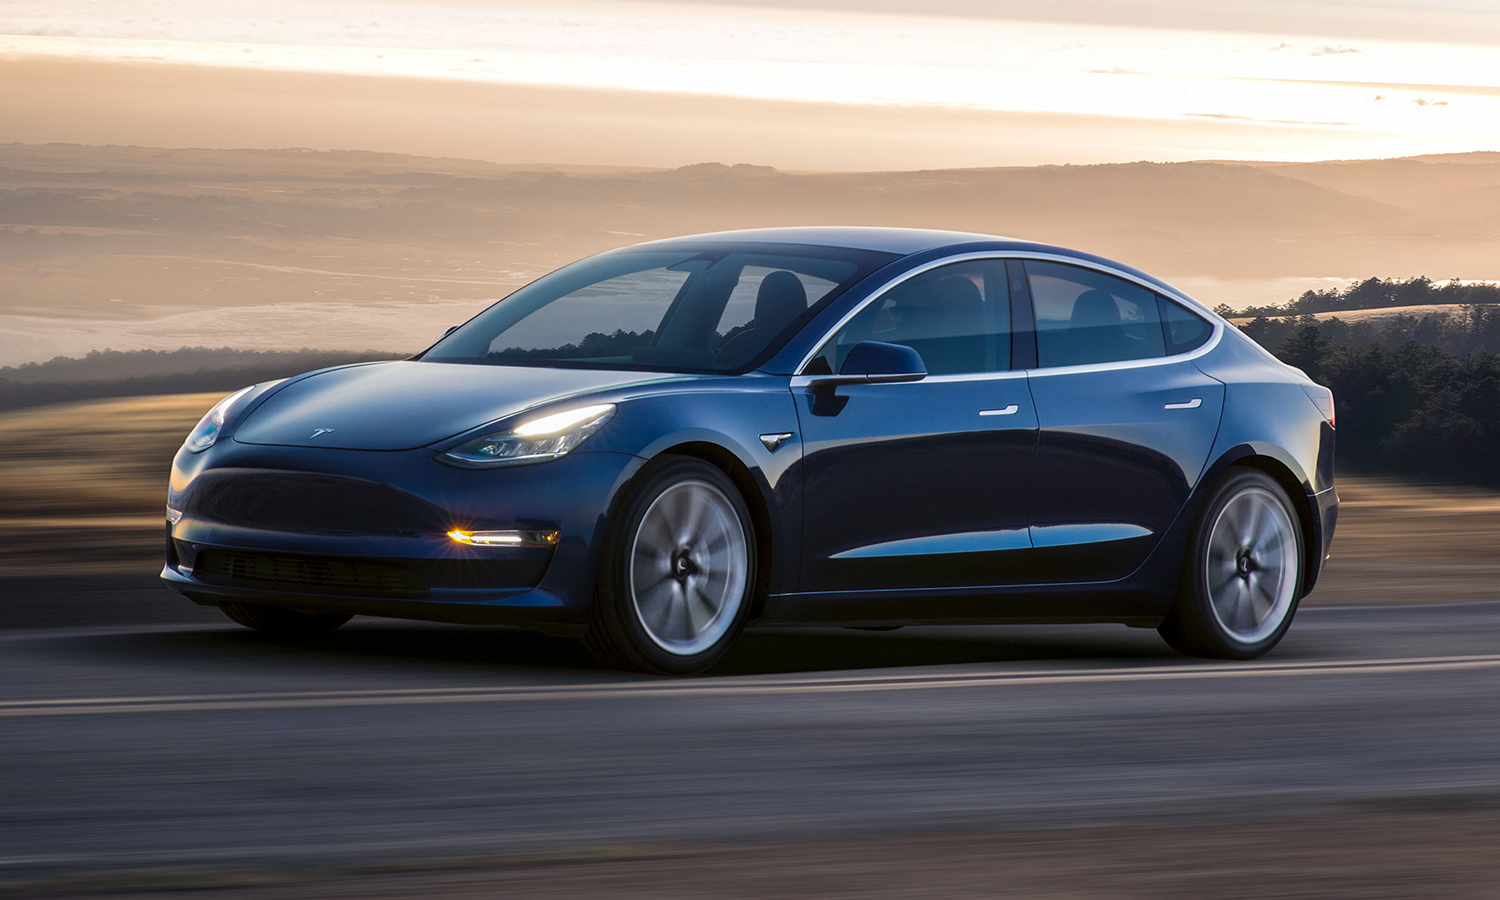 Best Electric Cars You Can Buy in 2019 | Tom's Guide